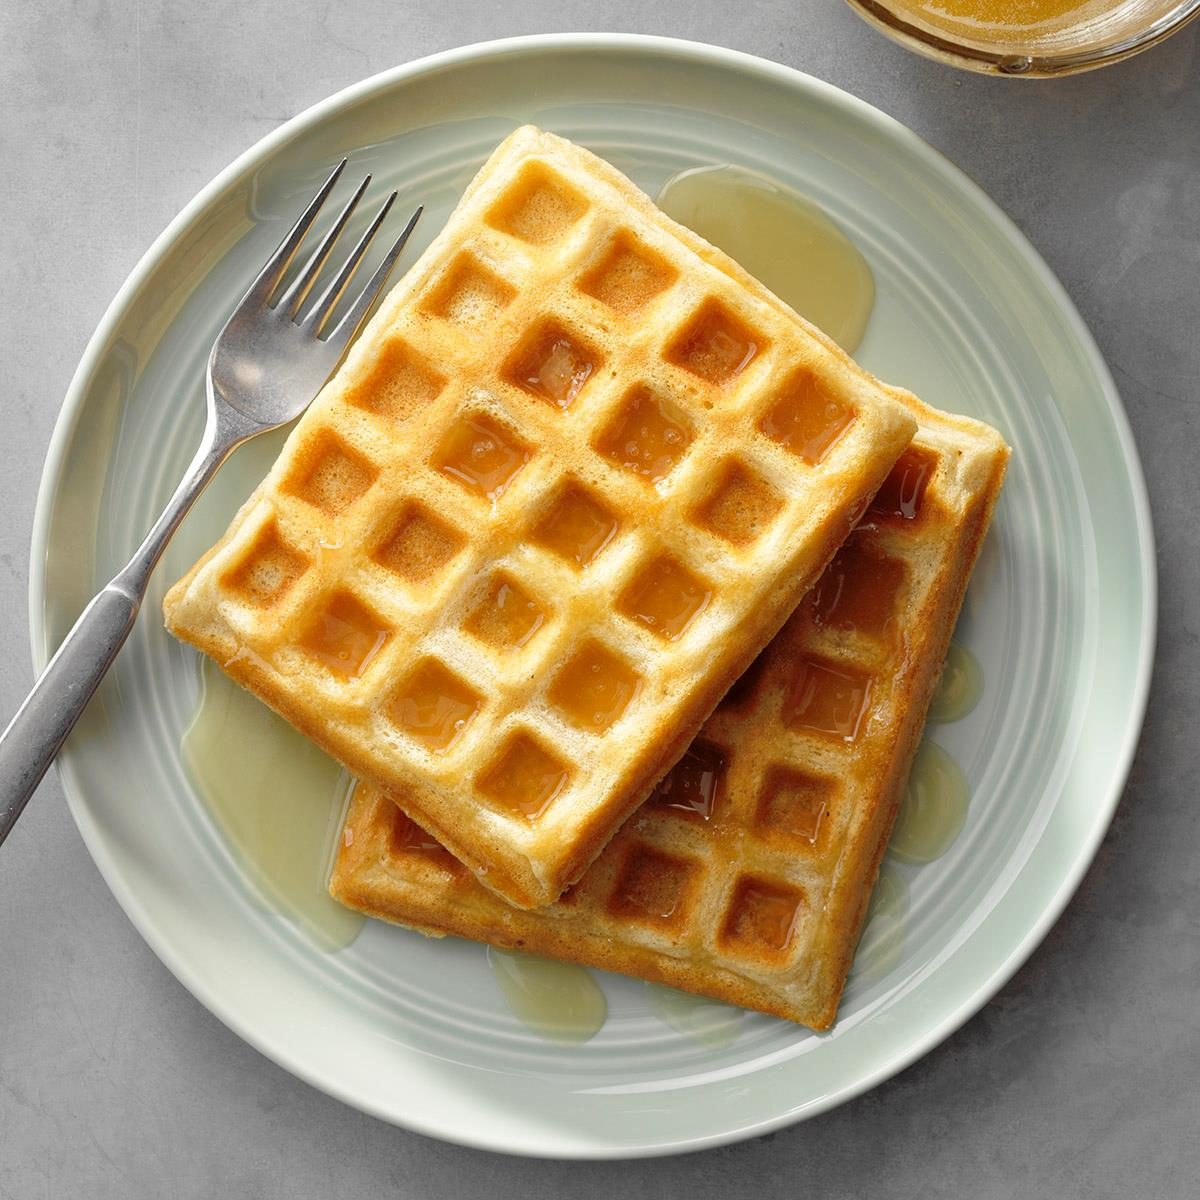 Easy Morning Waffles Exps Tohppmp 48564 E08 23 2b 2